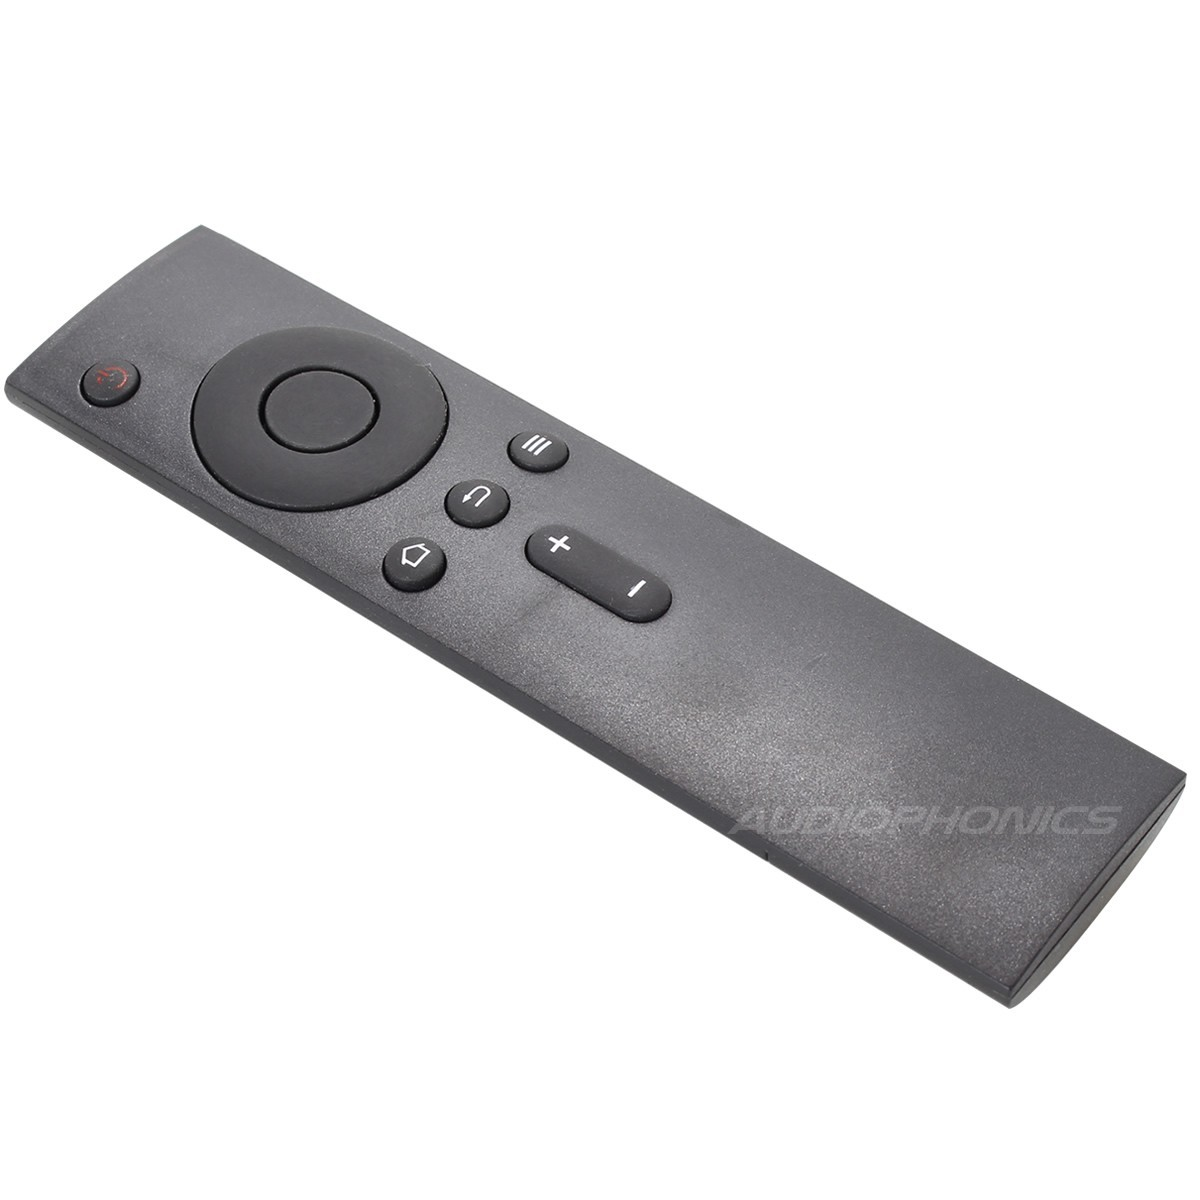 Infrared Remote with Navigation Pad